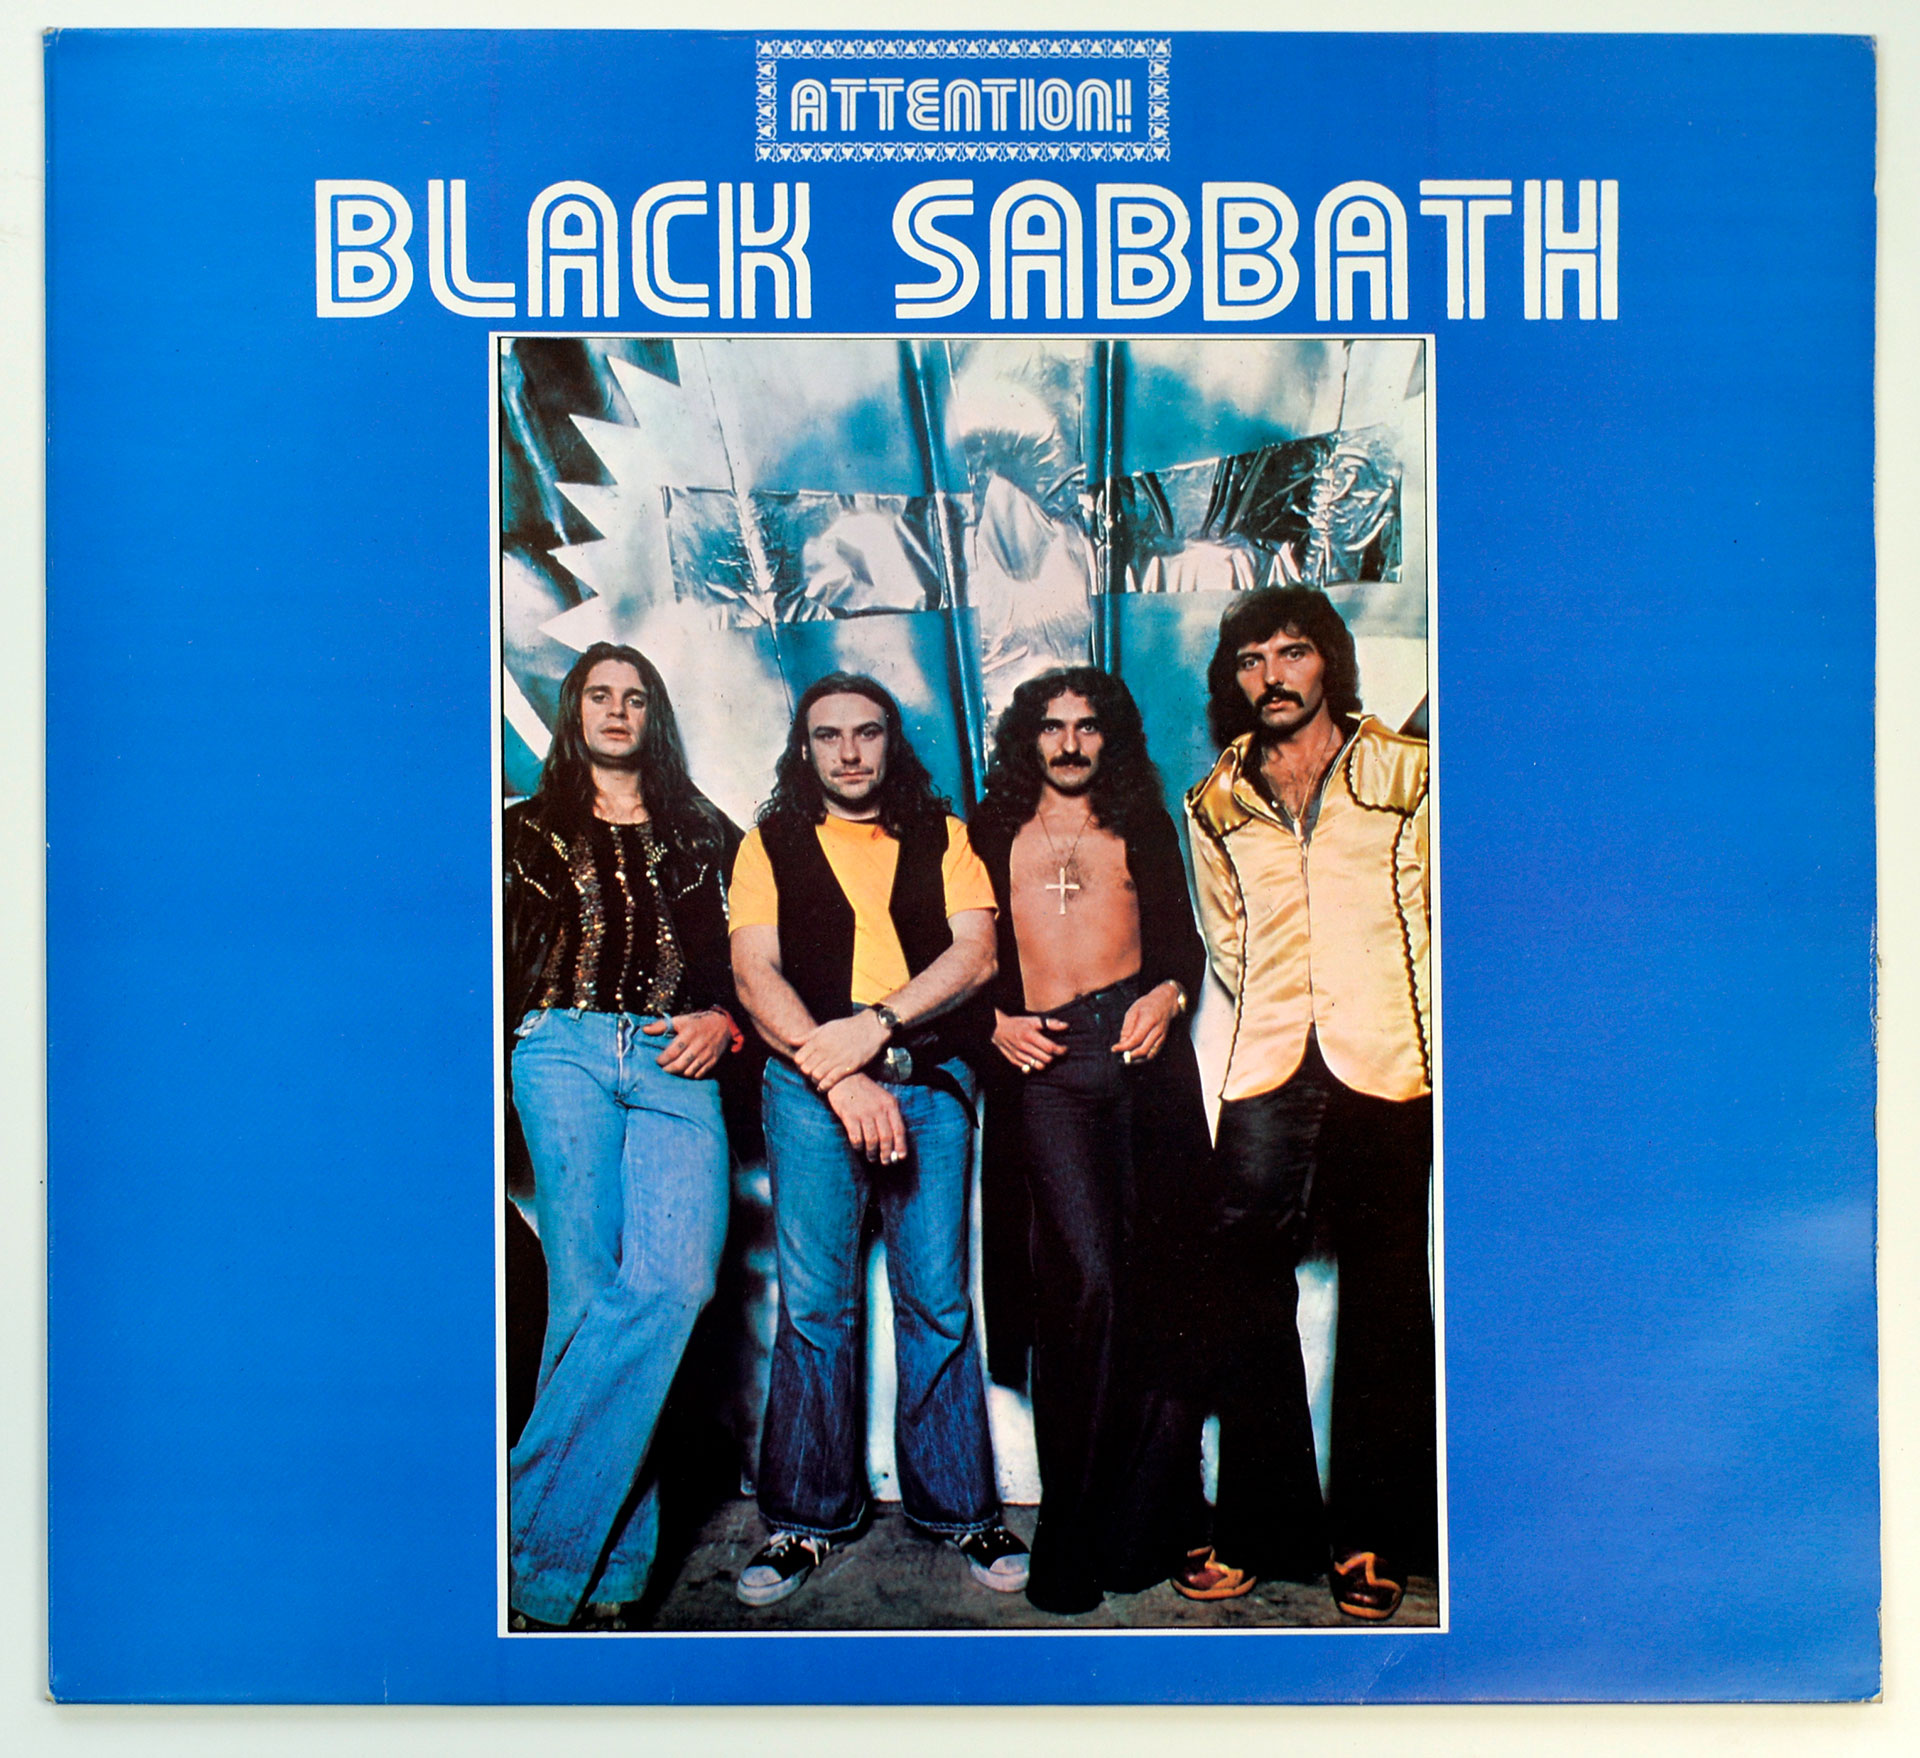 Photo of album front cover BLACK SABBATH - Attention! Volume Two